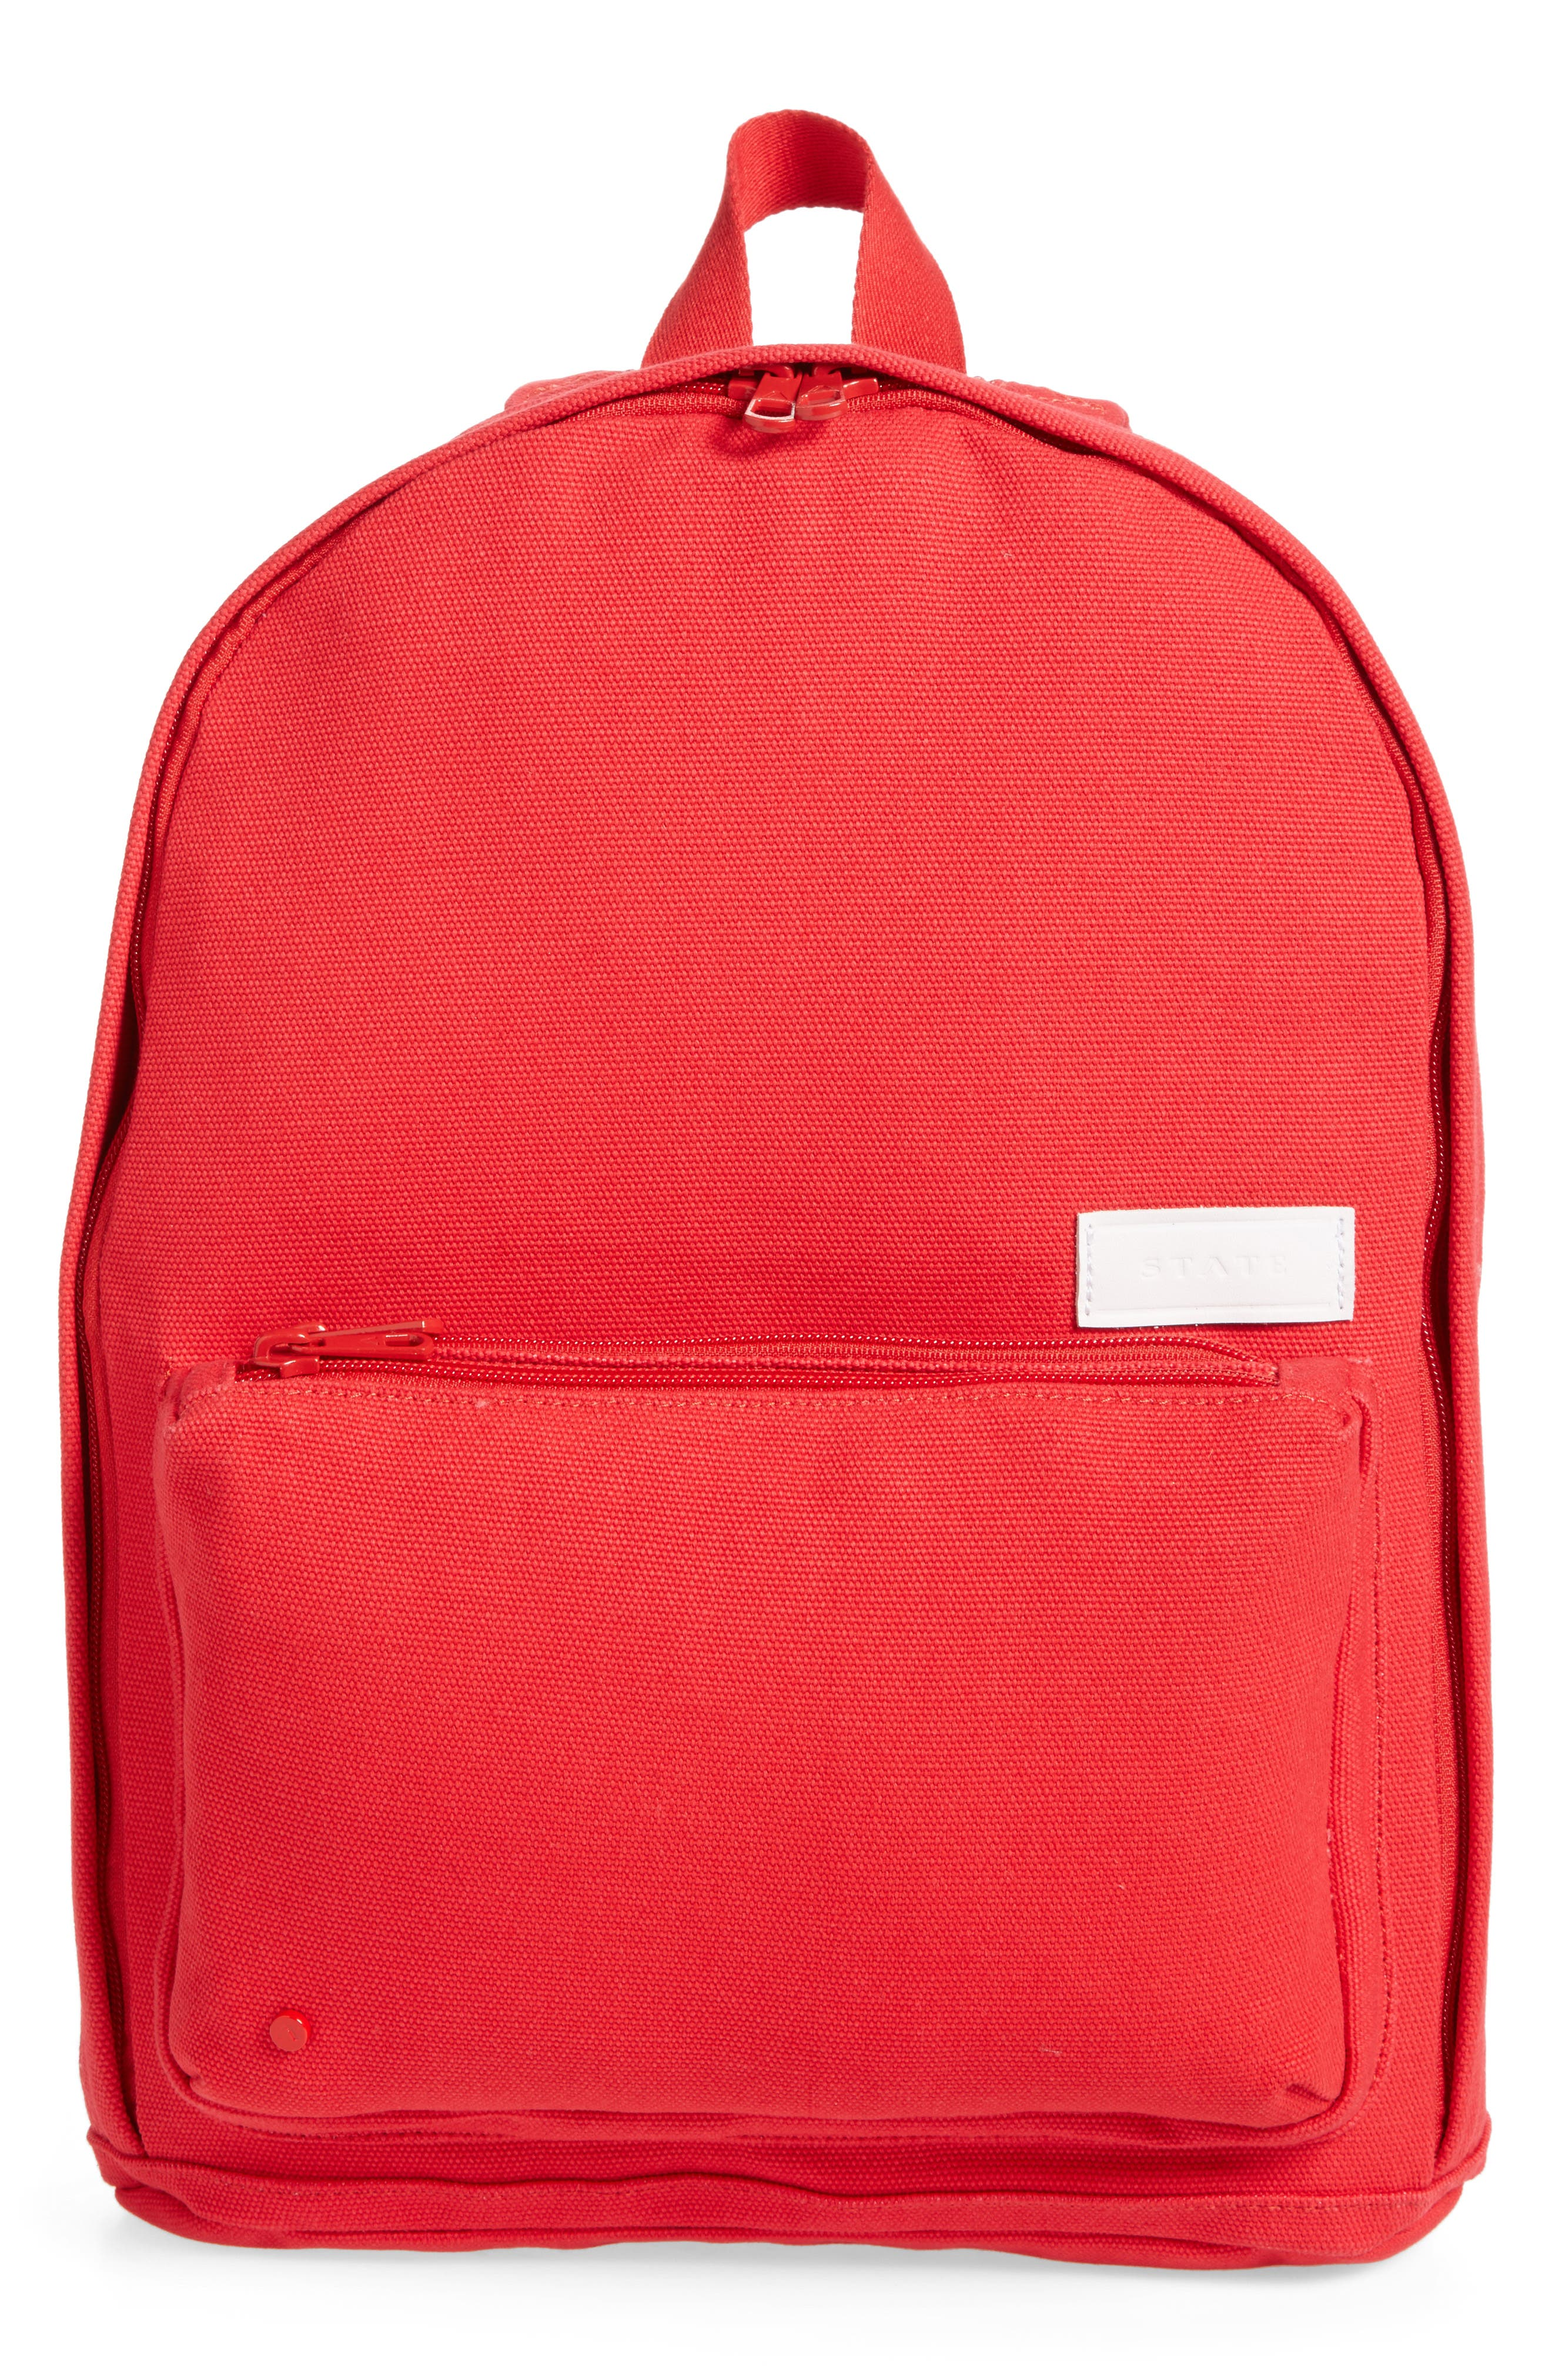 Slim Lorimer Water Resistant Canvas Backpack,                             Main thumbnail 1, color,                             Red